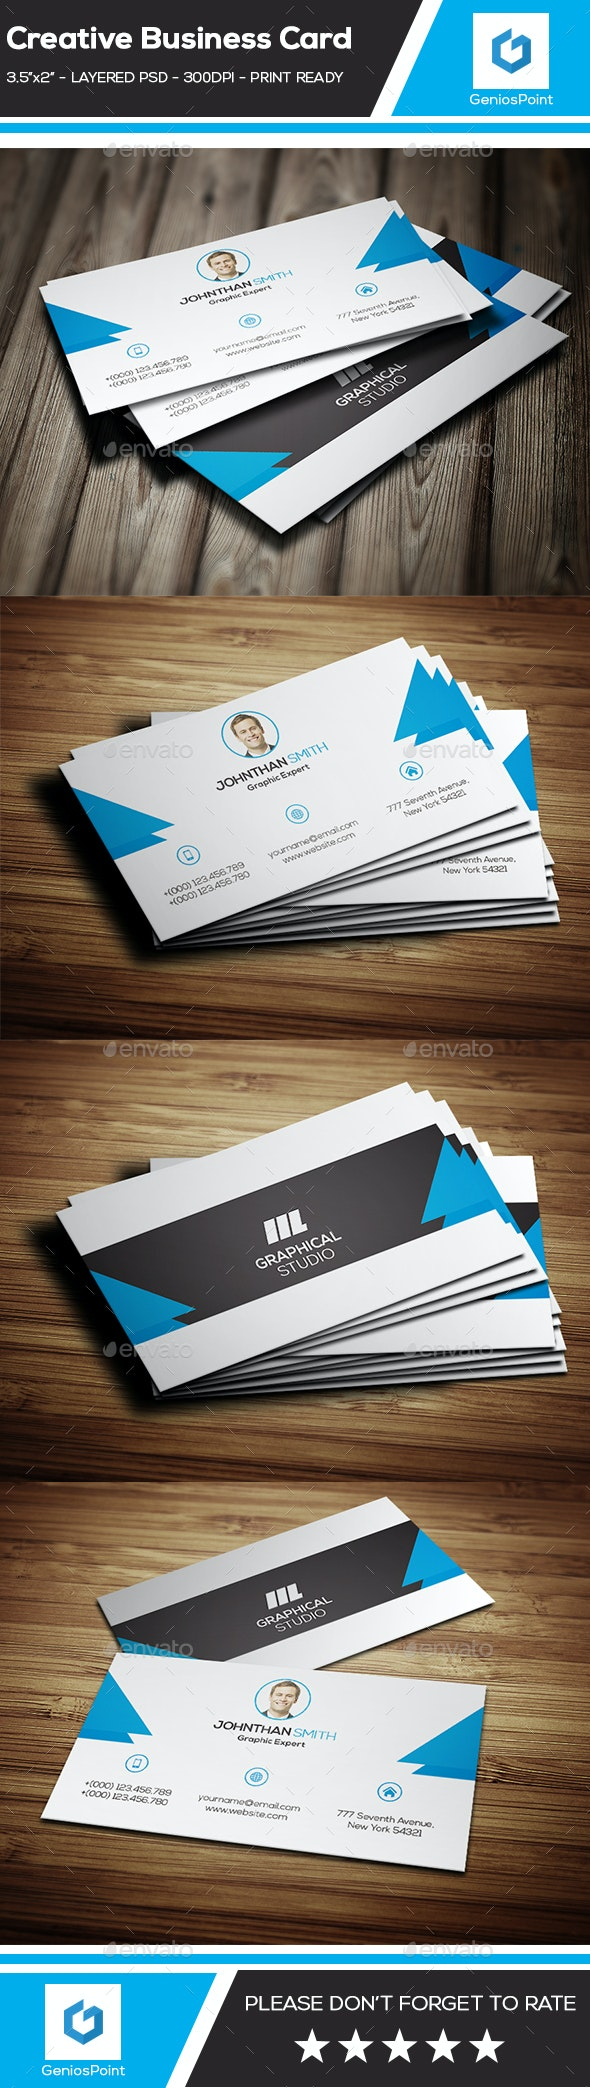 Creative Business card. - Business Cards Print Templates